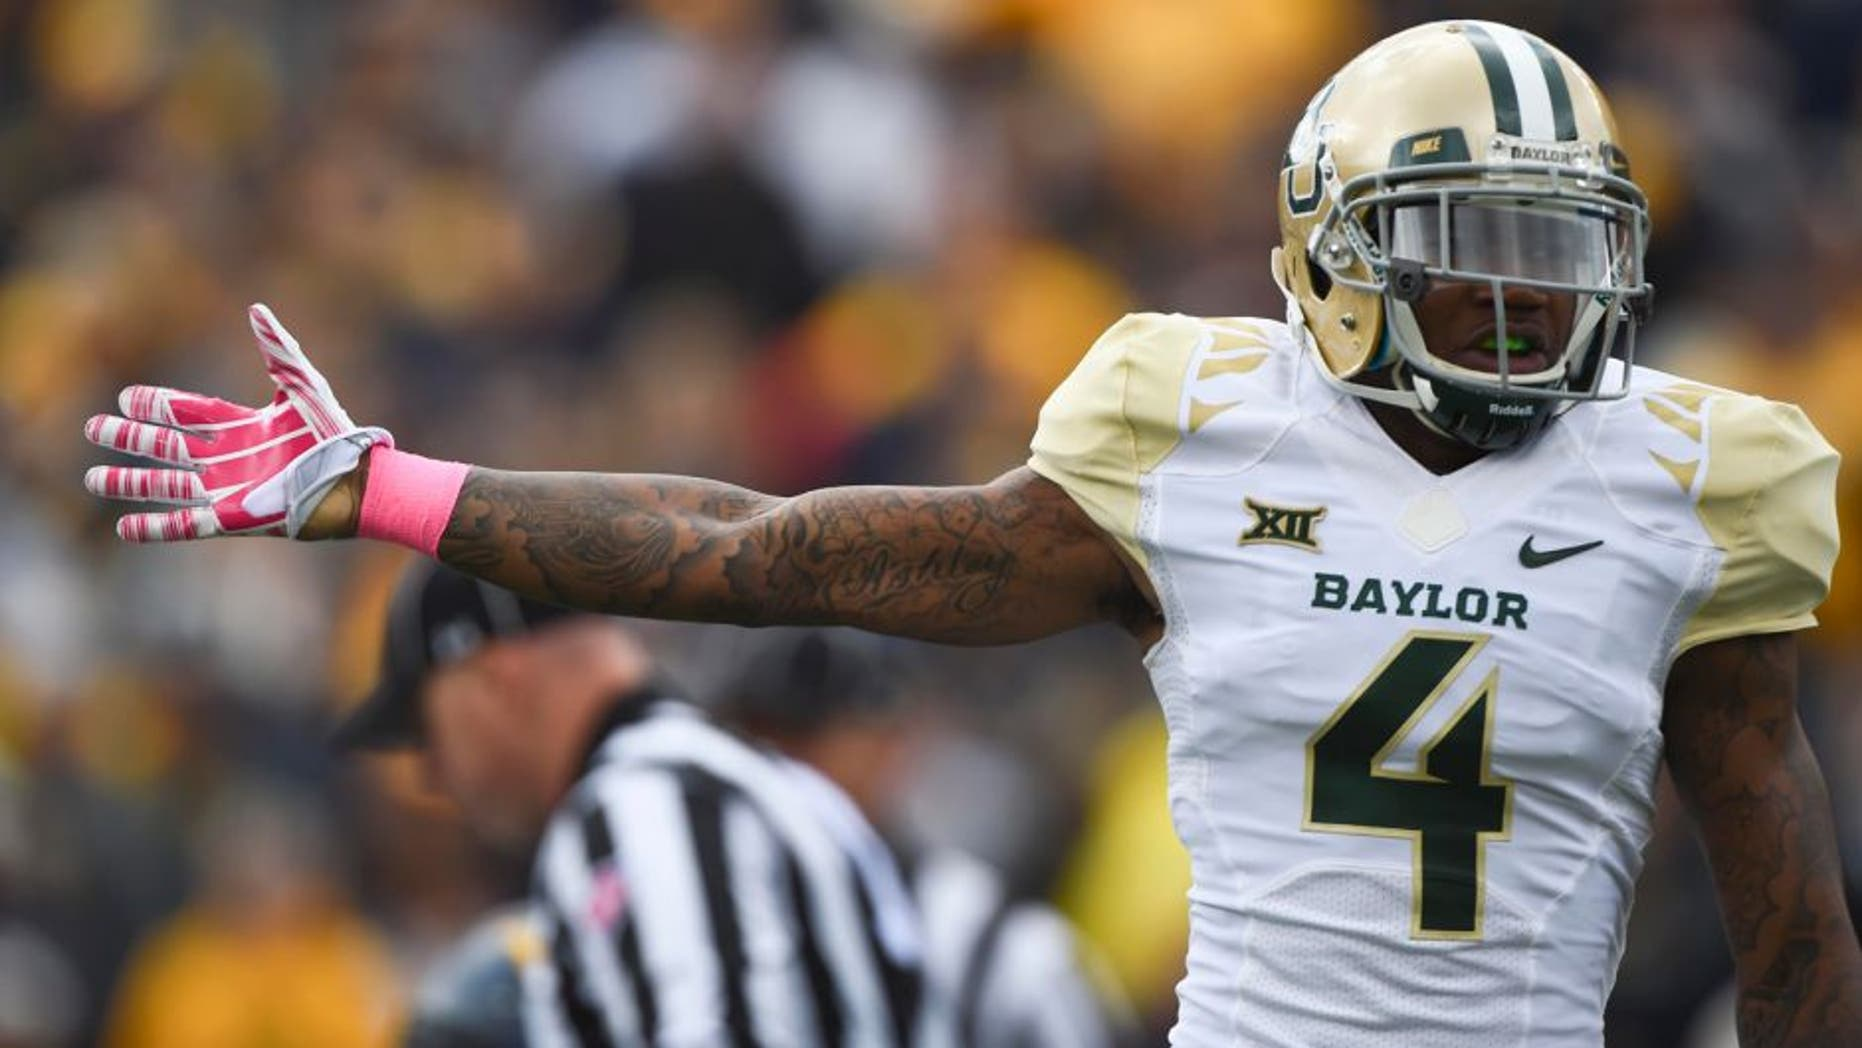 Oct 18, 2014; Morgantown, WV, USA; Baylor Bears cornerback Xavien Howard (4) signals they had recovered the fumble during the first quarter against the West Virginia Mountaineers at Milan Puskar Stadium. Mandatory Credit: Tommy Gilligan-USA TODAY Sports